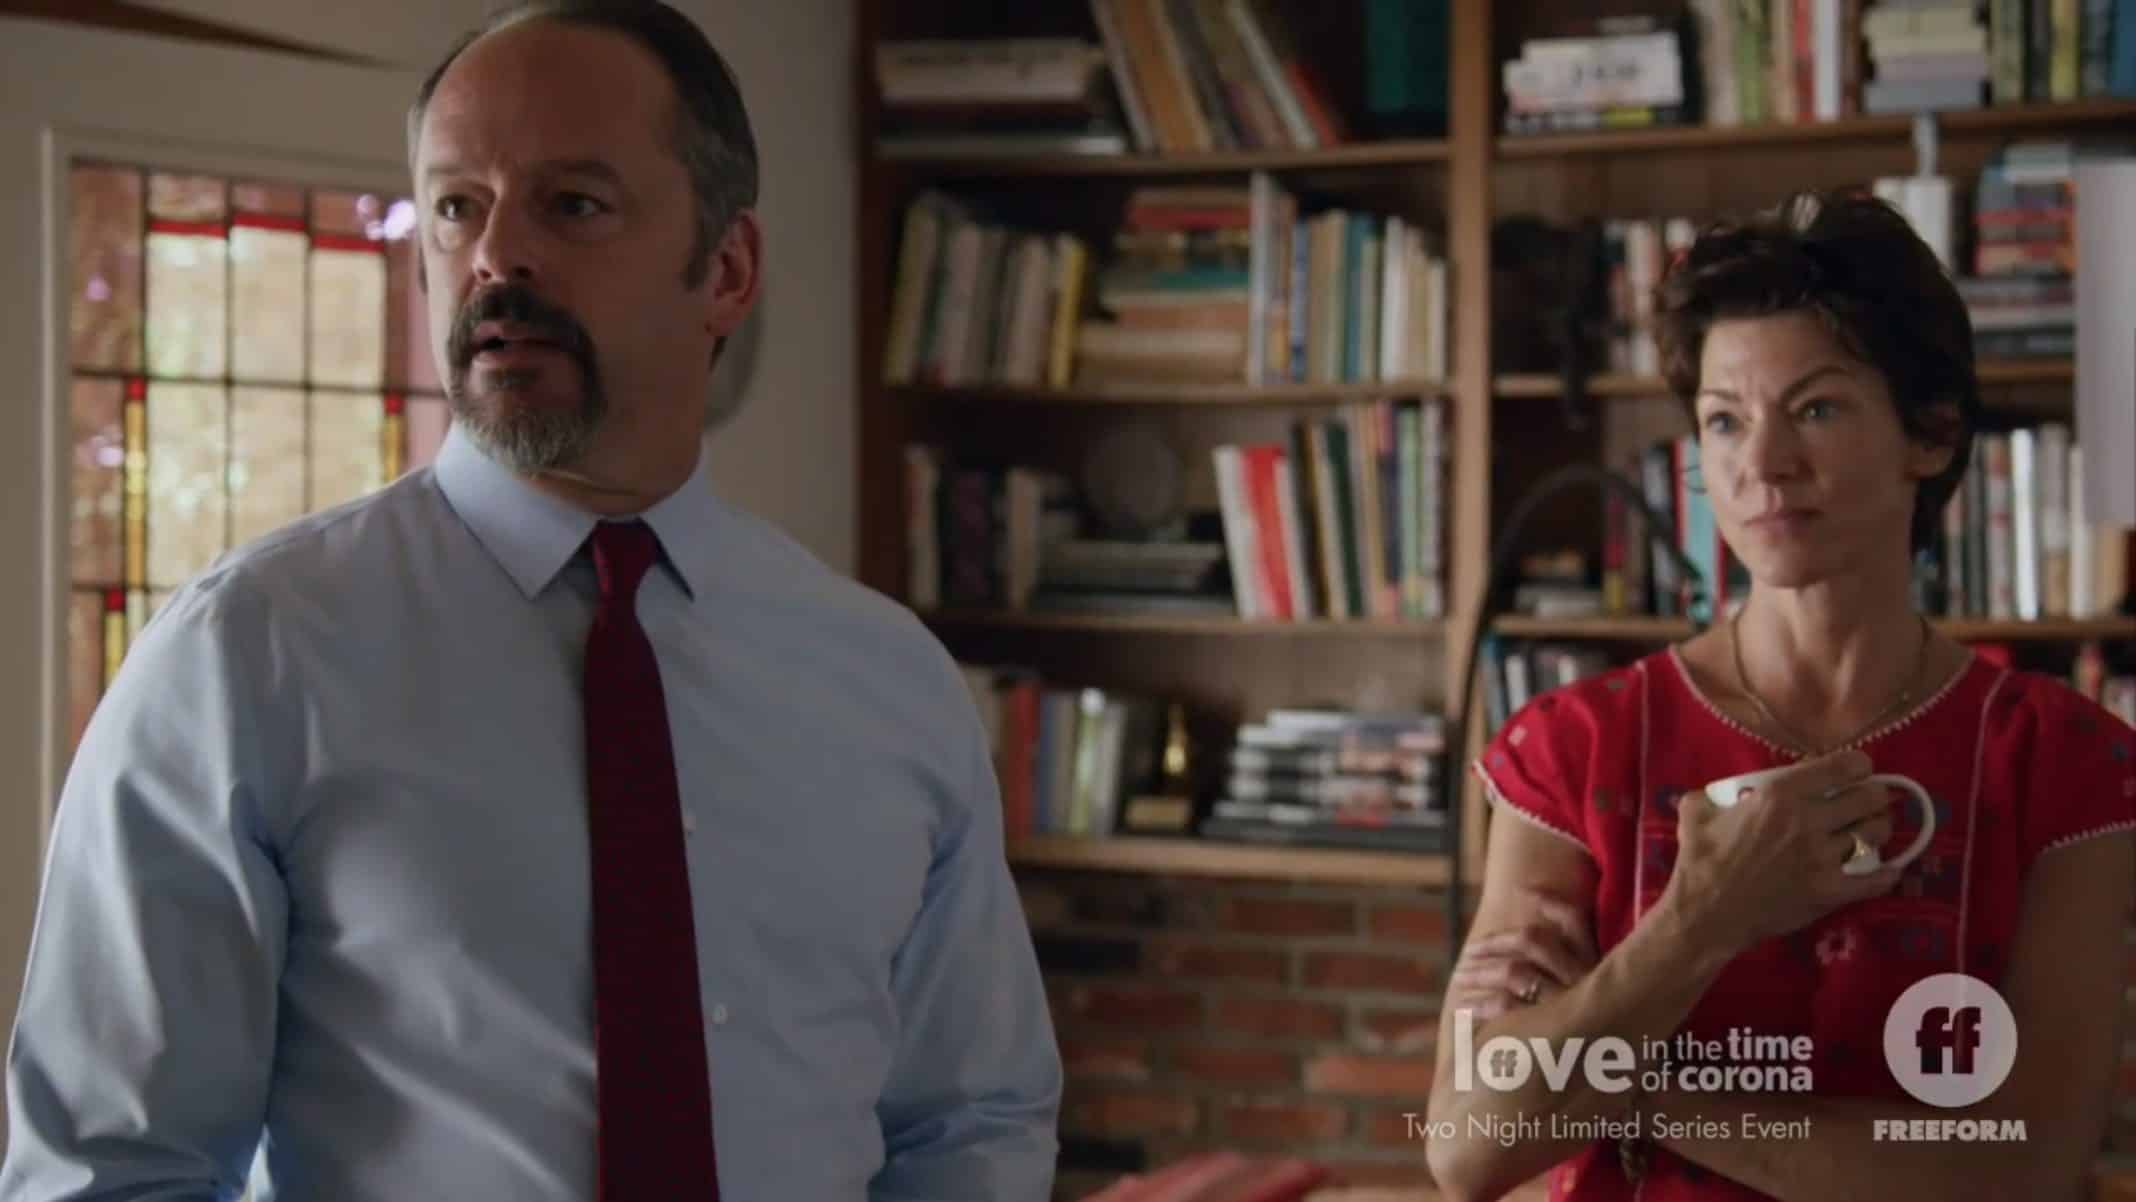 Paul (Gil Bellows) and Sarah (Rya Kihlstedt) in the living room.